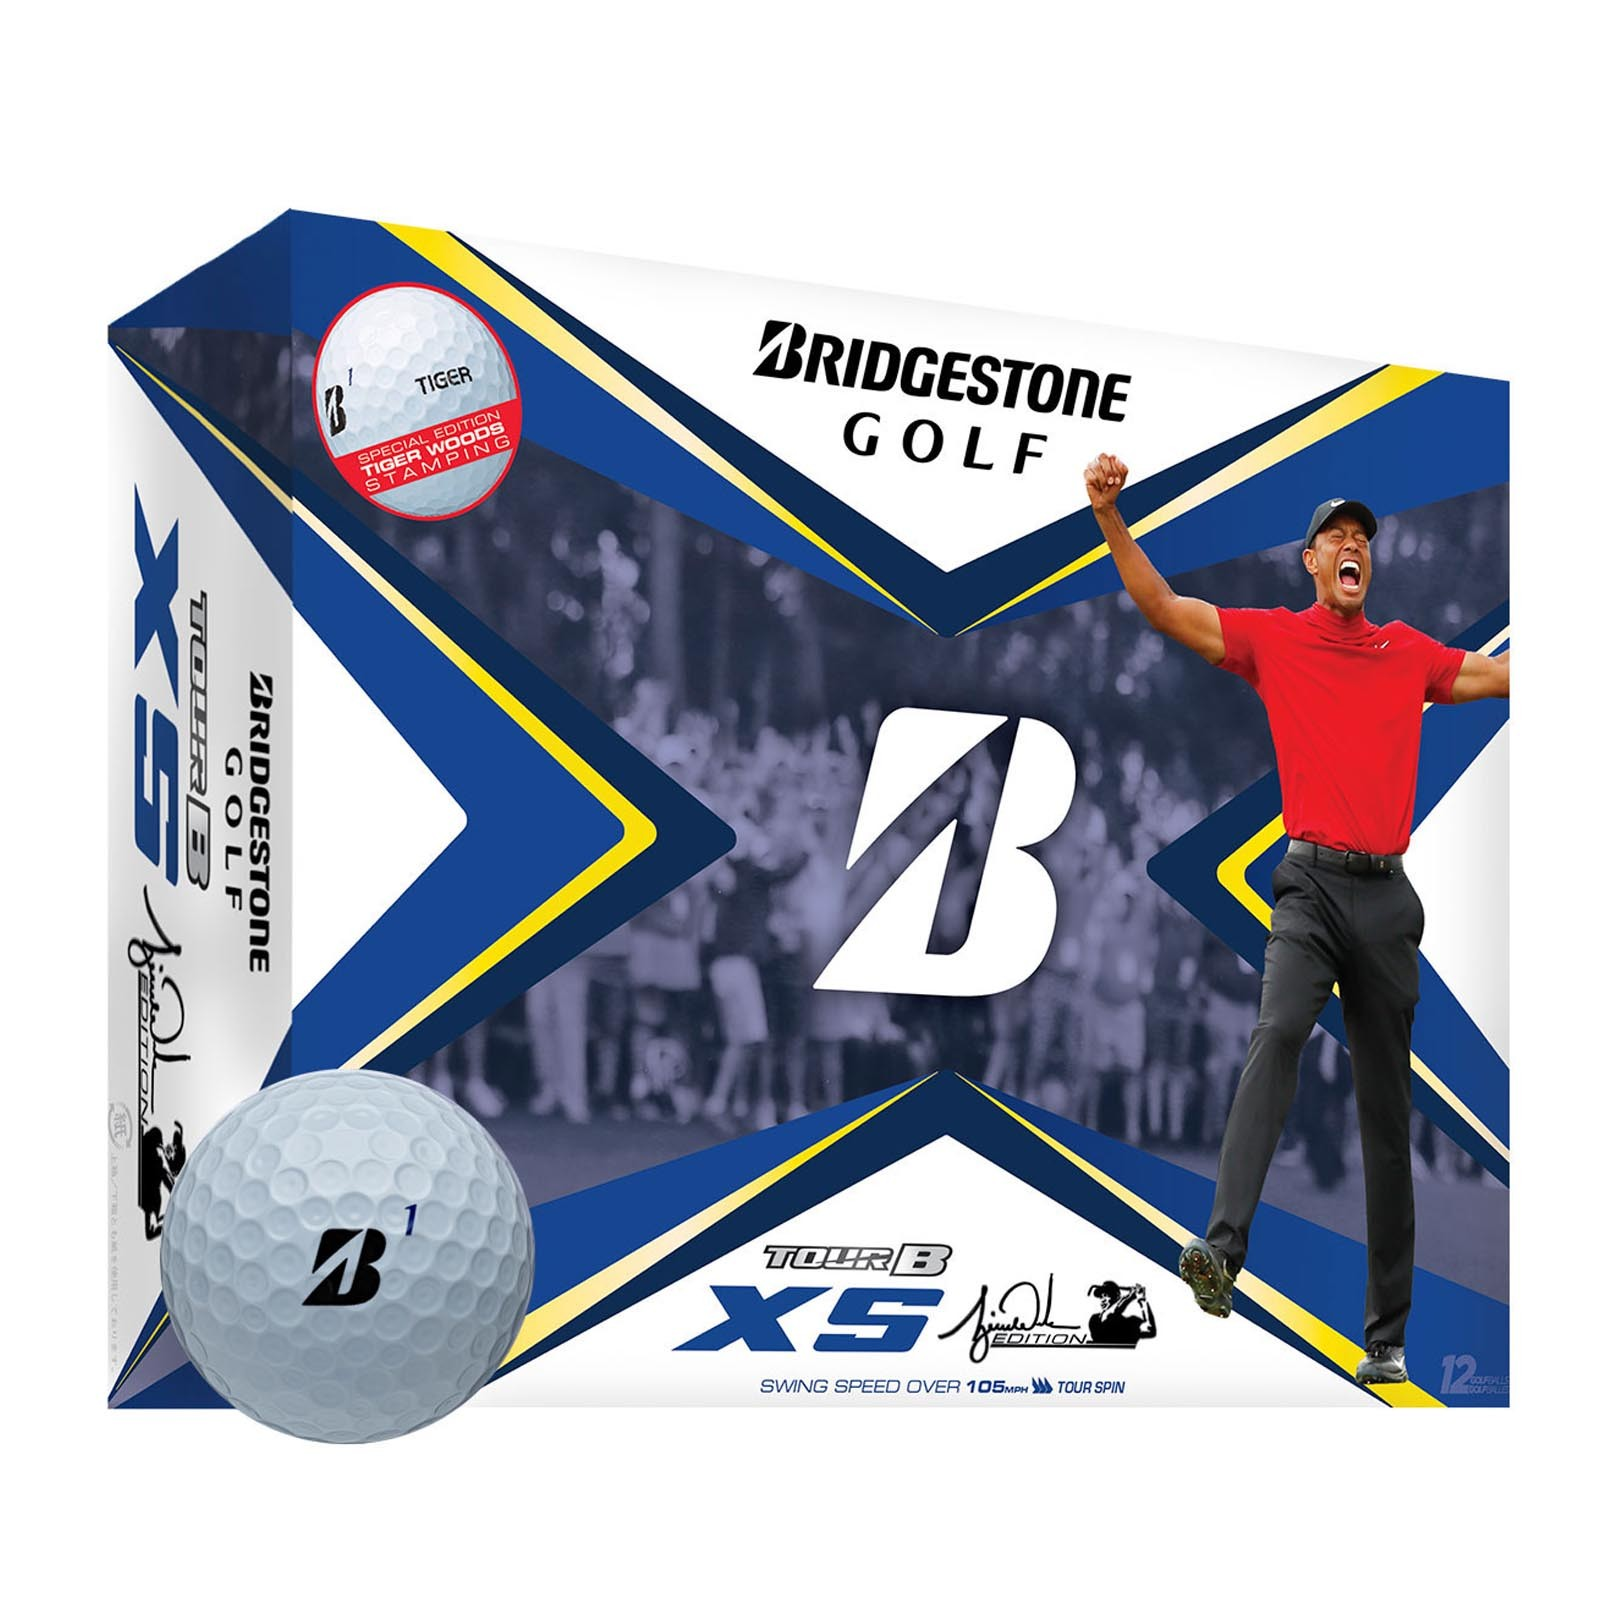 Bridgestone Tiger Woods Limited Edition Tour B XS Golf Balls